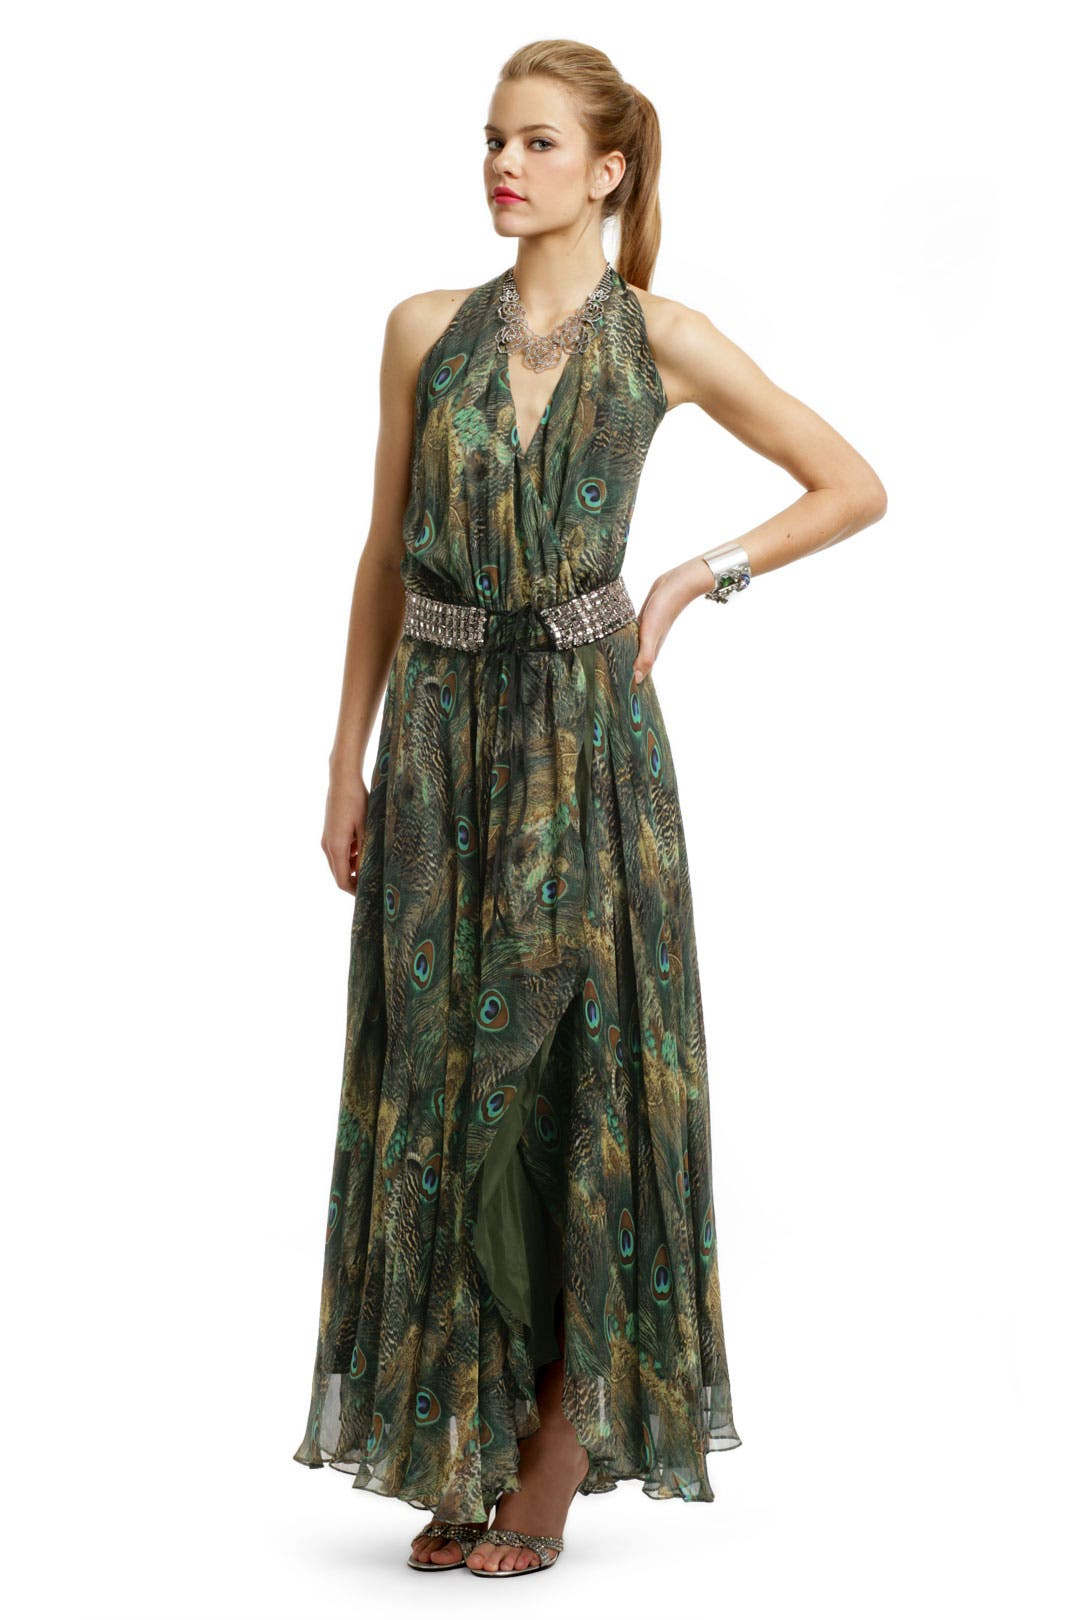 Queen of the Jungle Gown by Haute Hippie